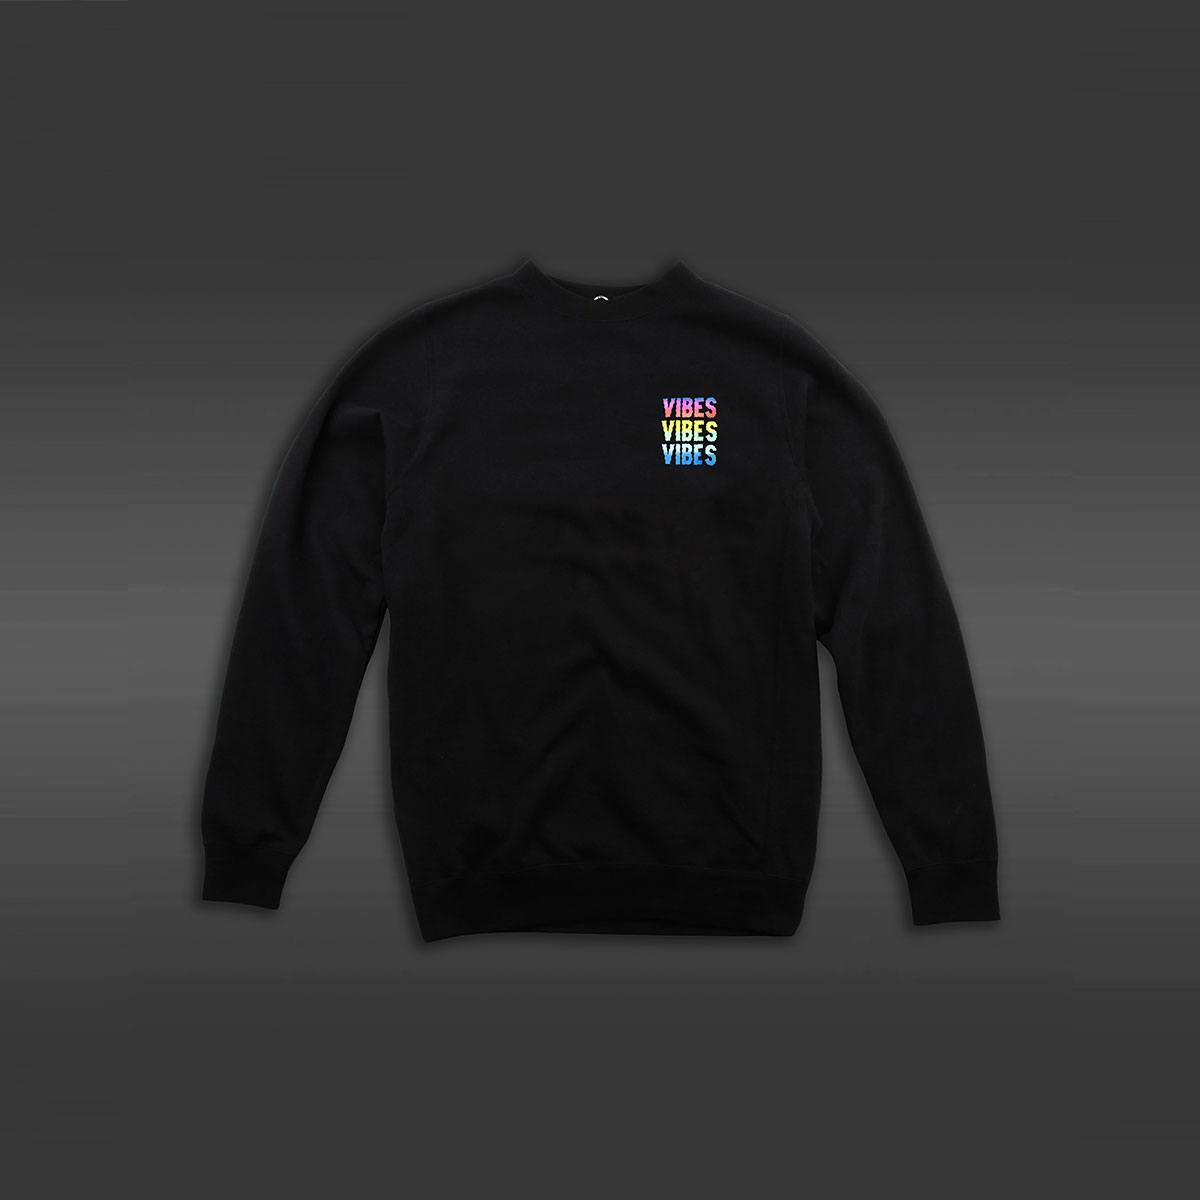 Vibes Crew Neck Sweater - Black